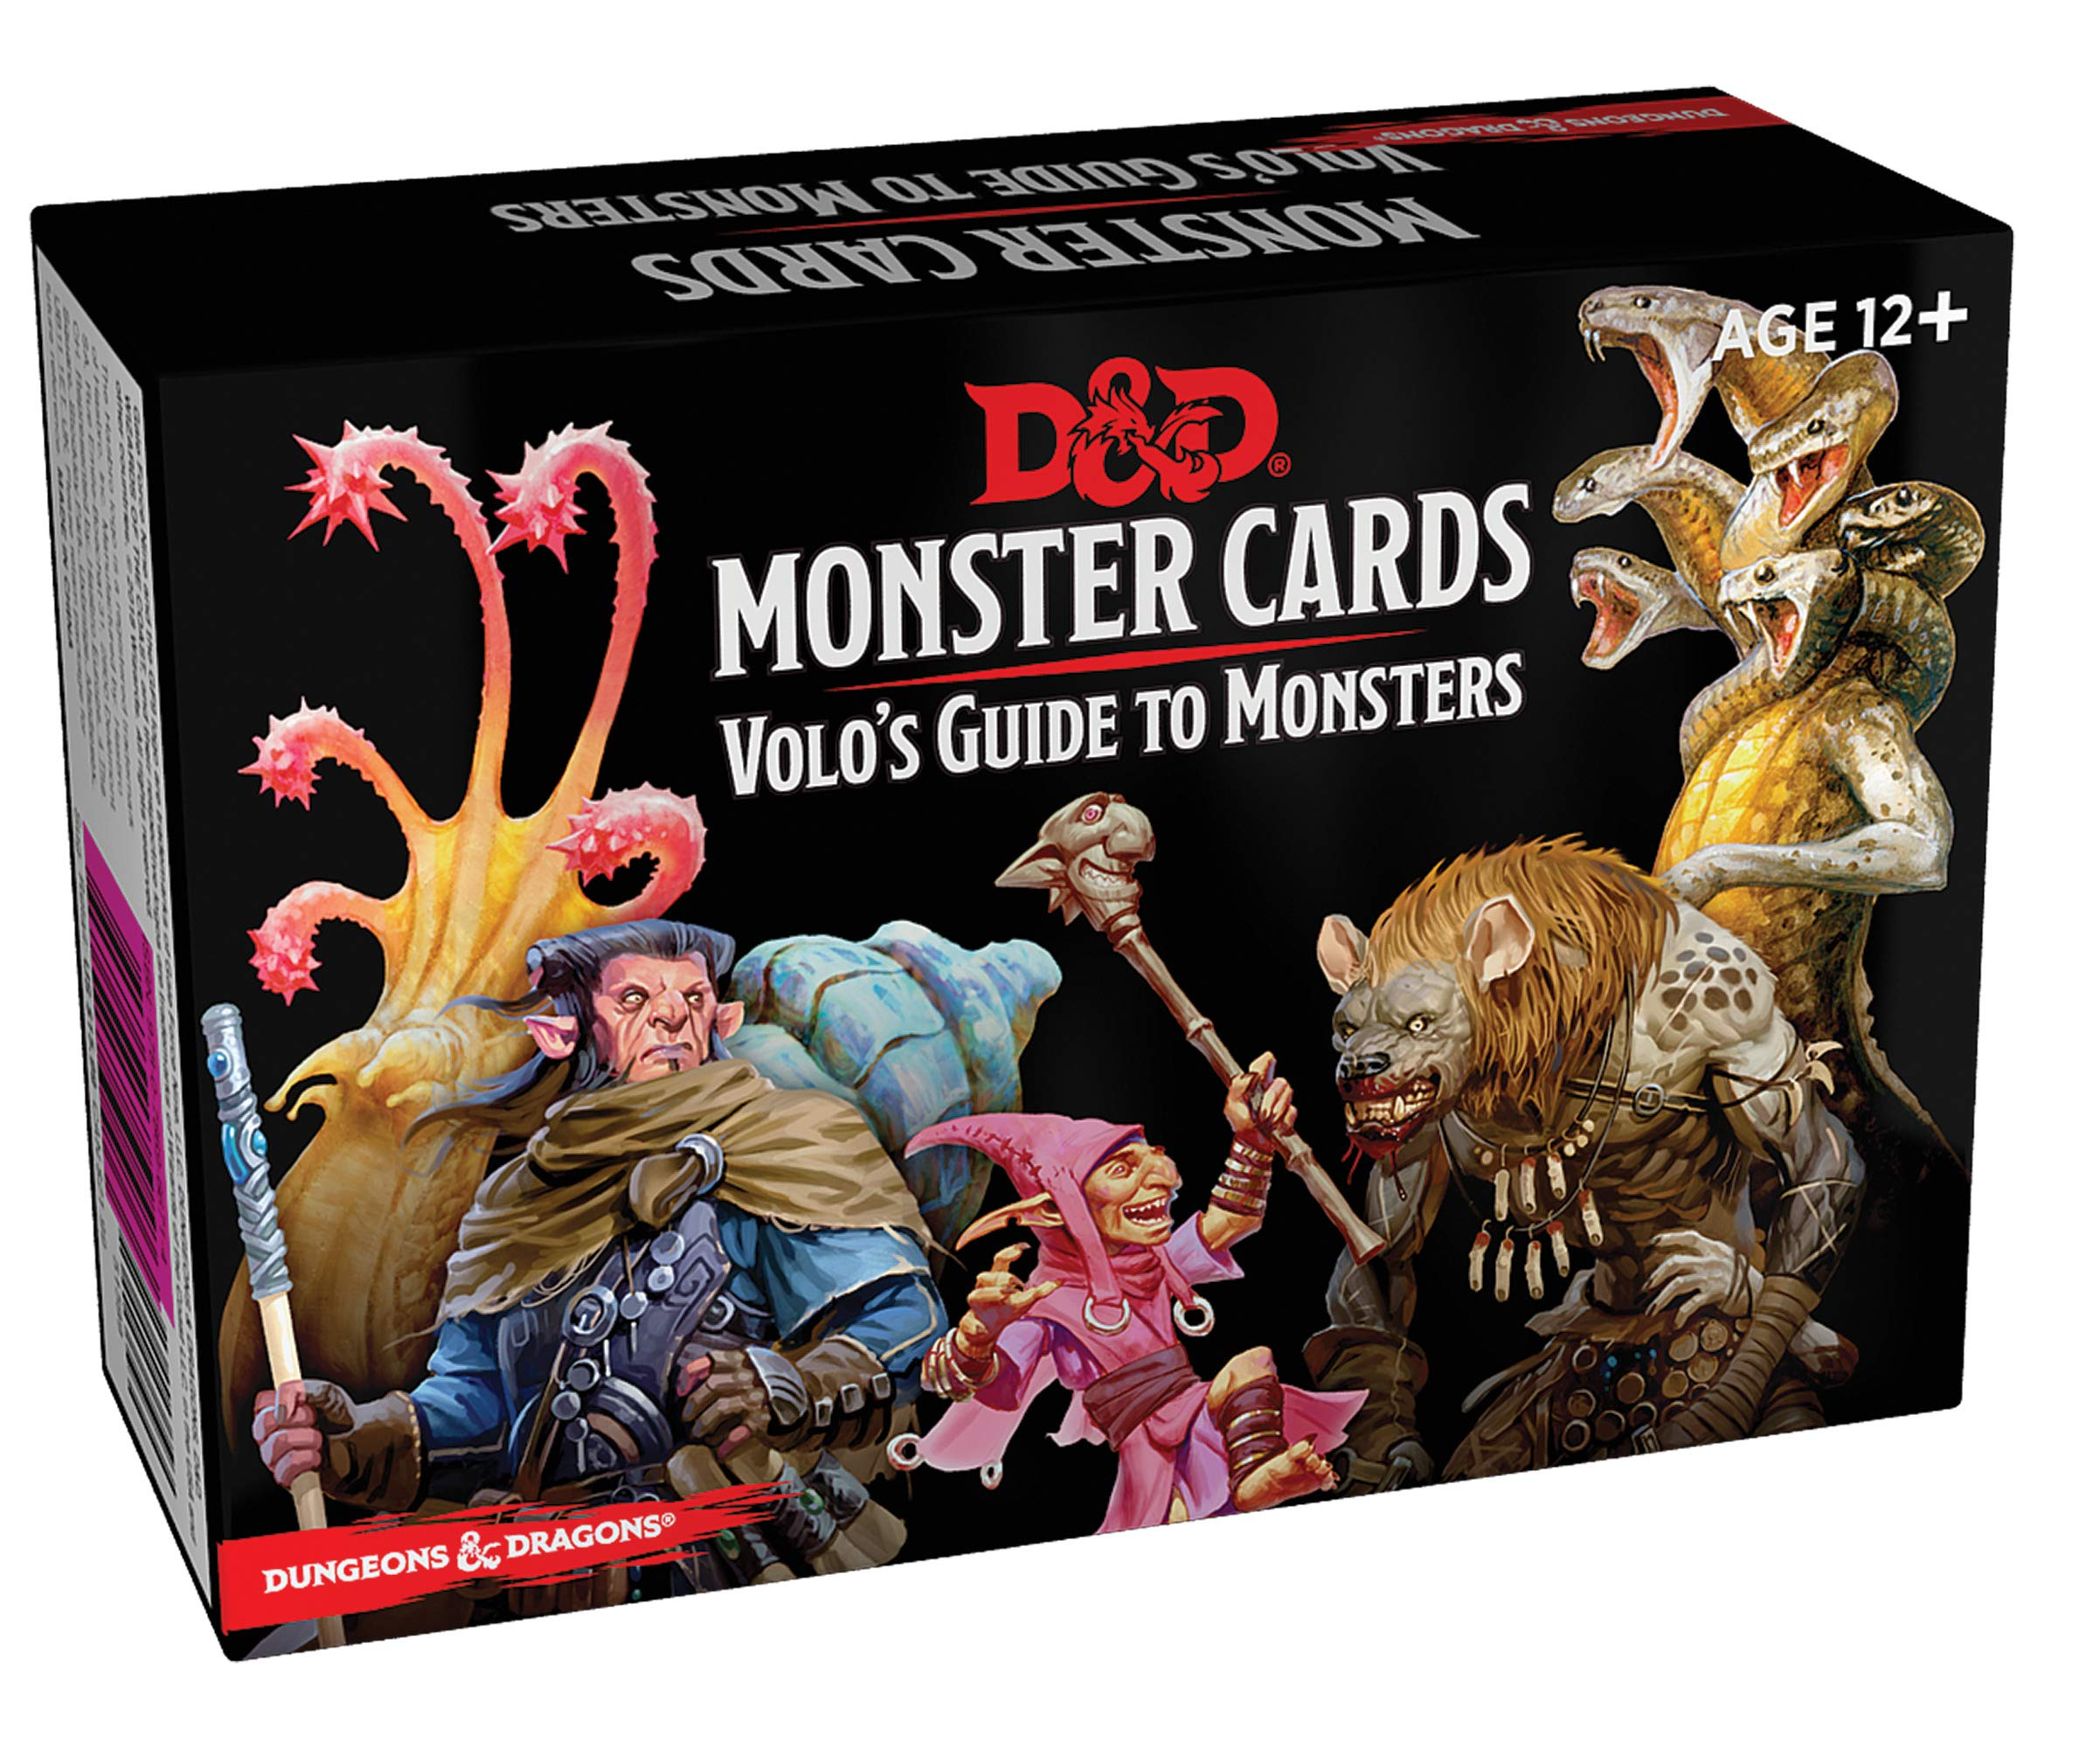 D&D MONSTER CARDS VOLO'S GUIDE